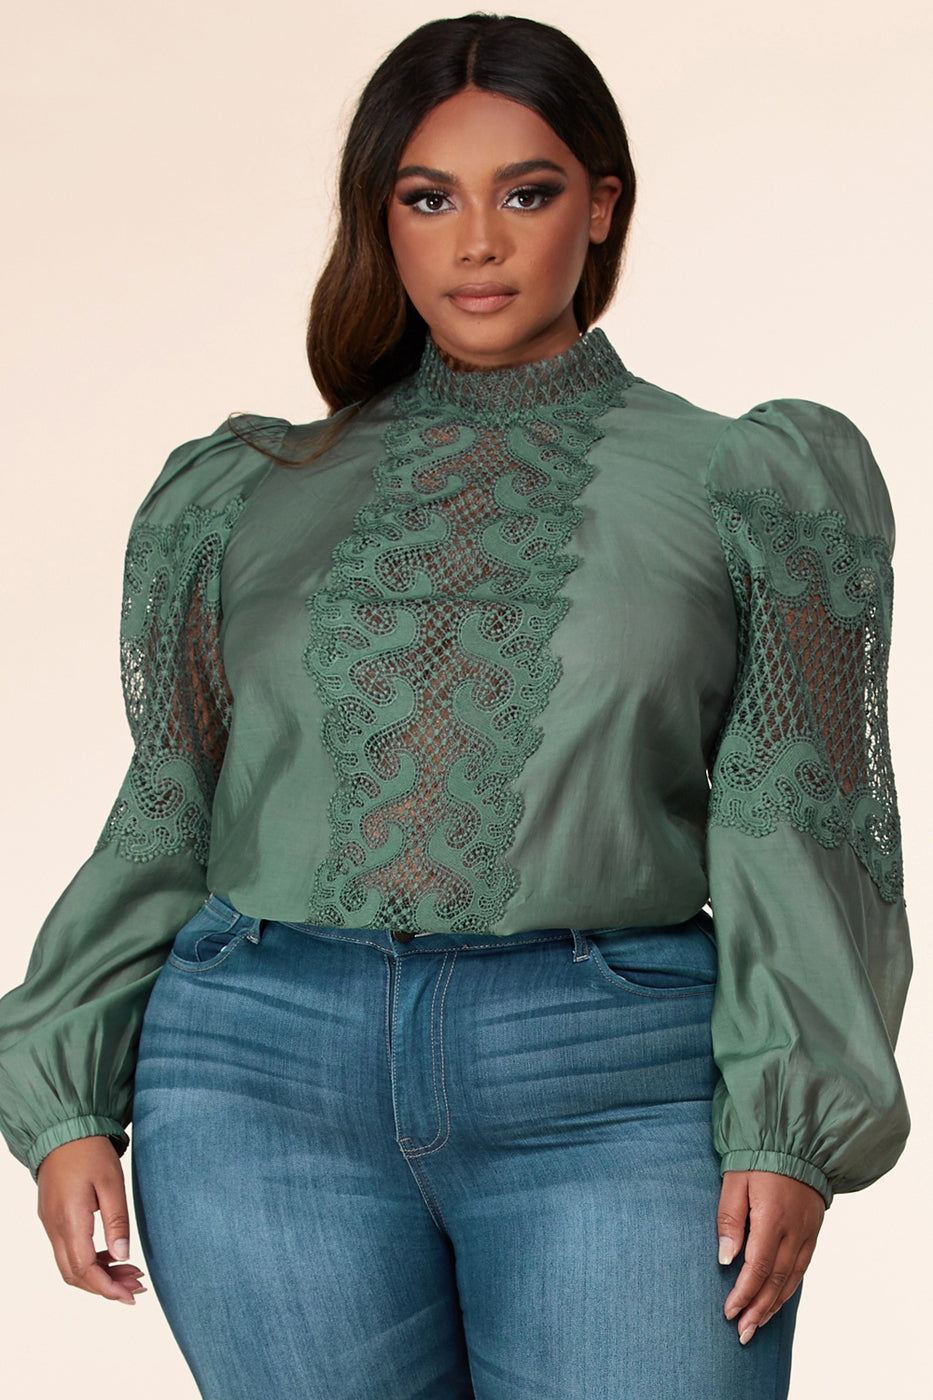 Mock neck sheer lace lantern long sleeve top